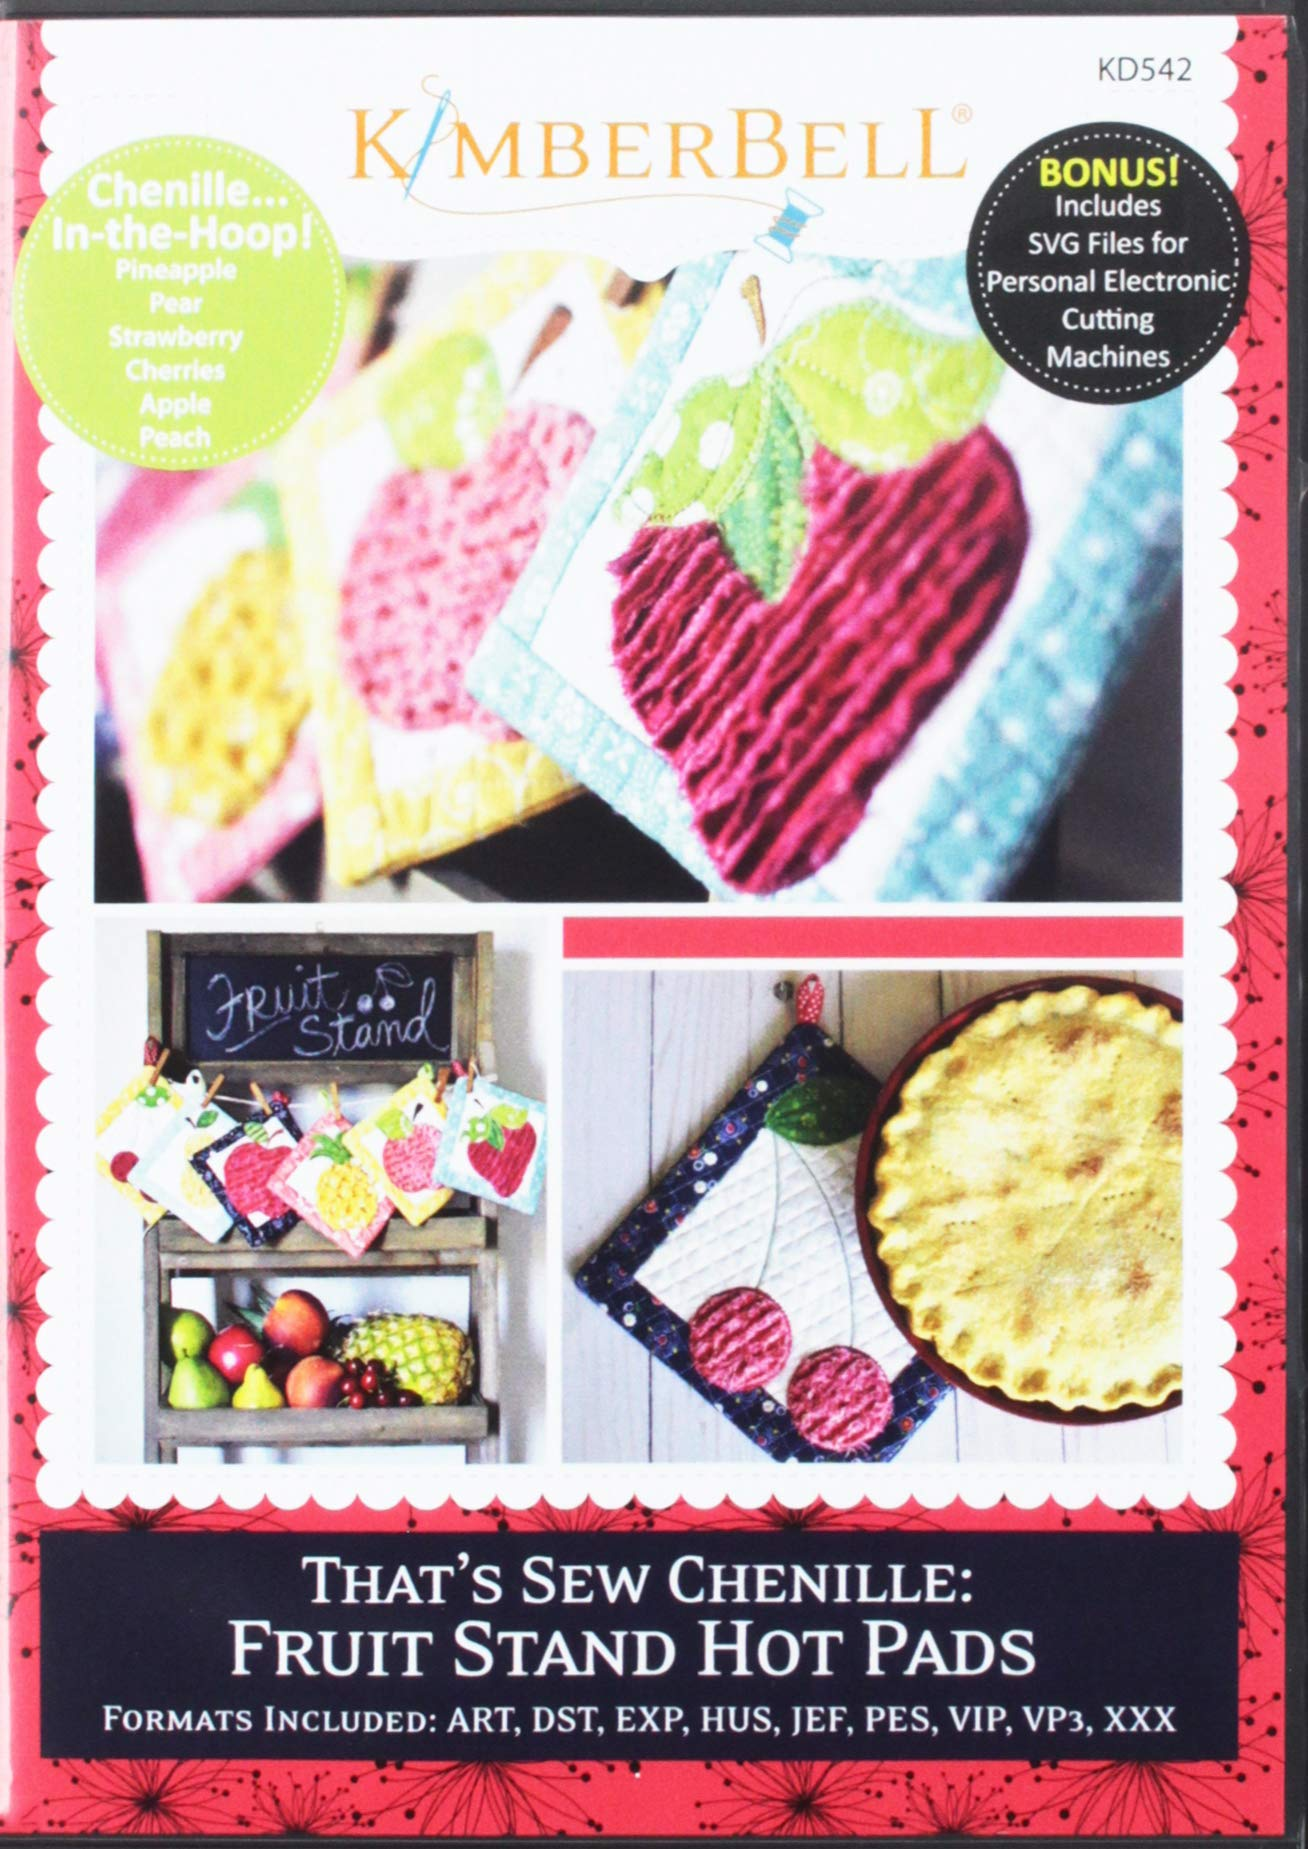 KIMBERBELL That's Sew Chenille Fruit Stand Hot Pads Machine Embroidery CD KD542 by Kimberbell